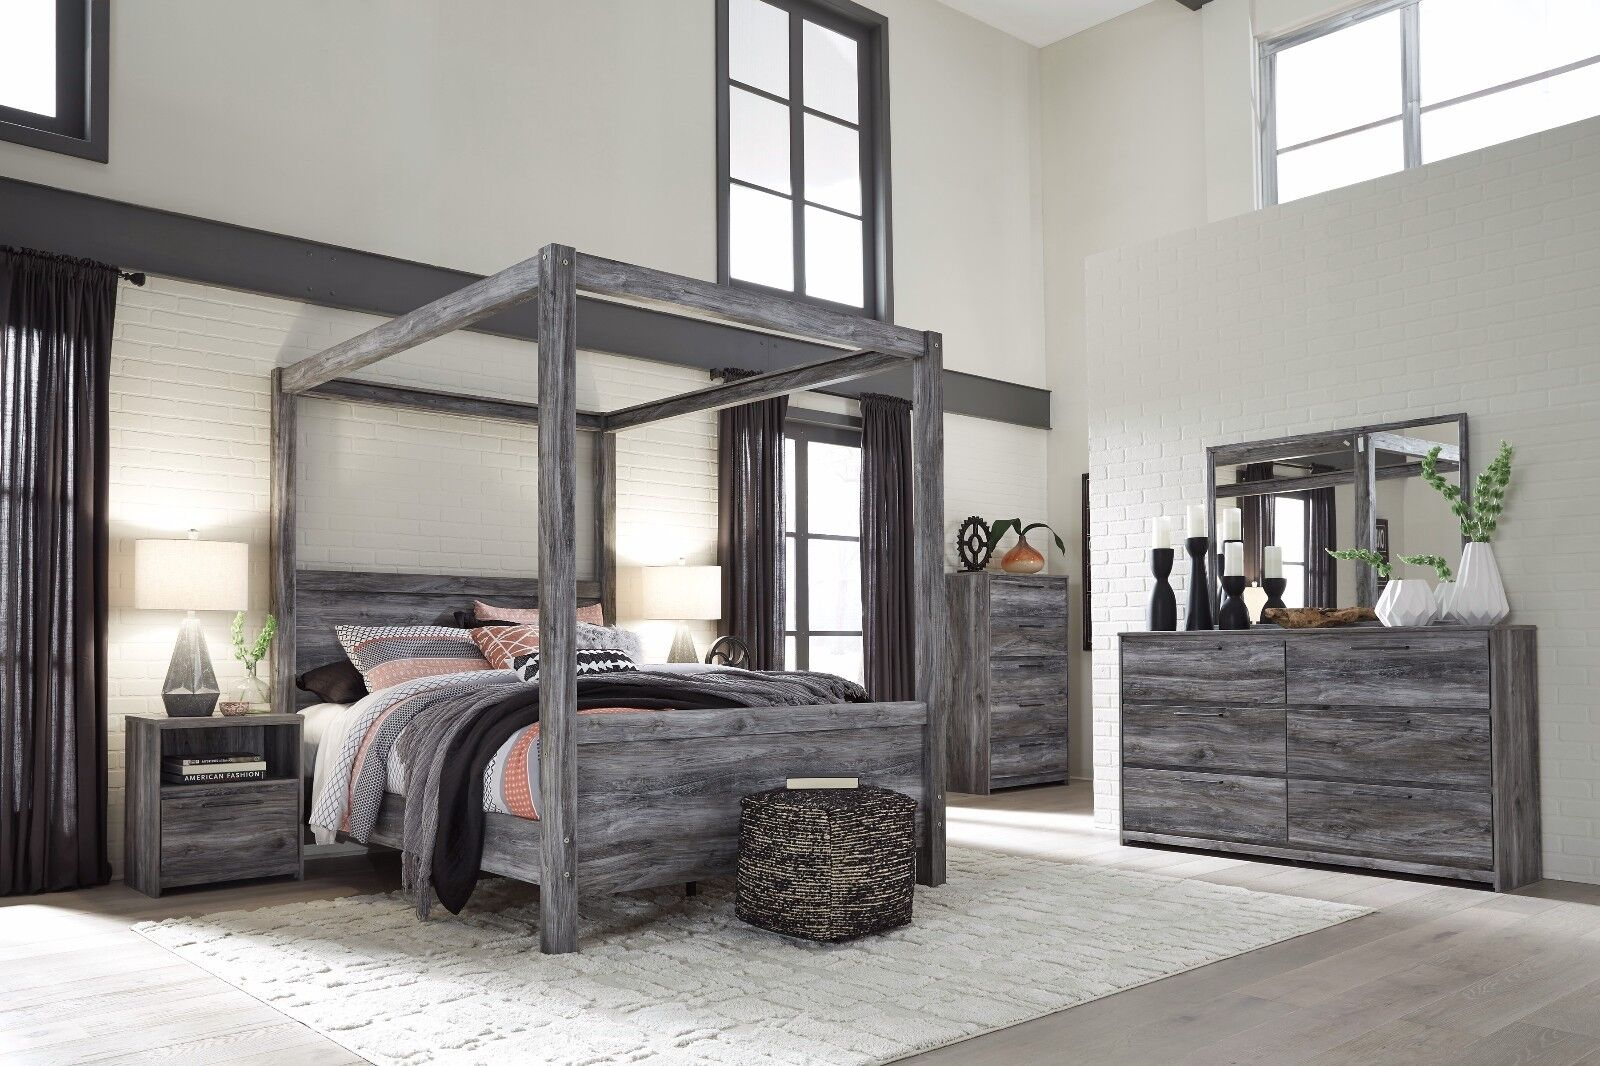 Ashley Furniture Baystorm Queen Canopy 6 Piece Bedroom Set B221 For Sale Online Ebay